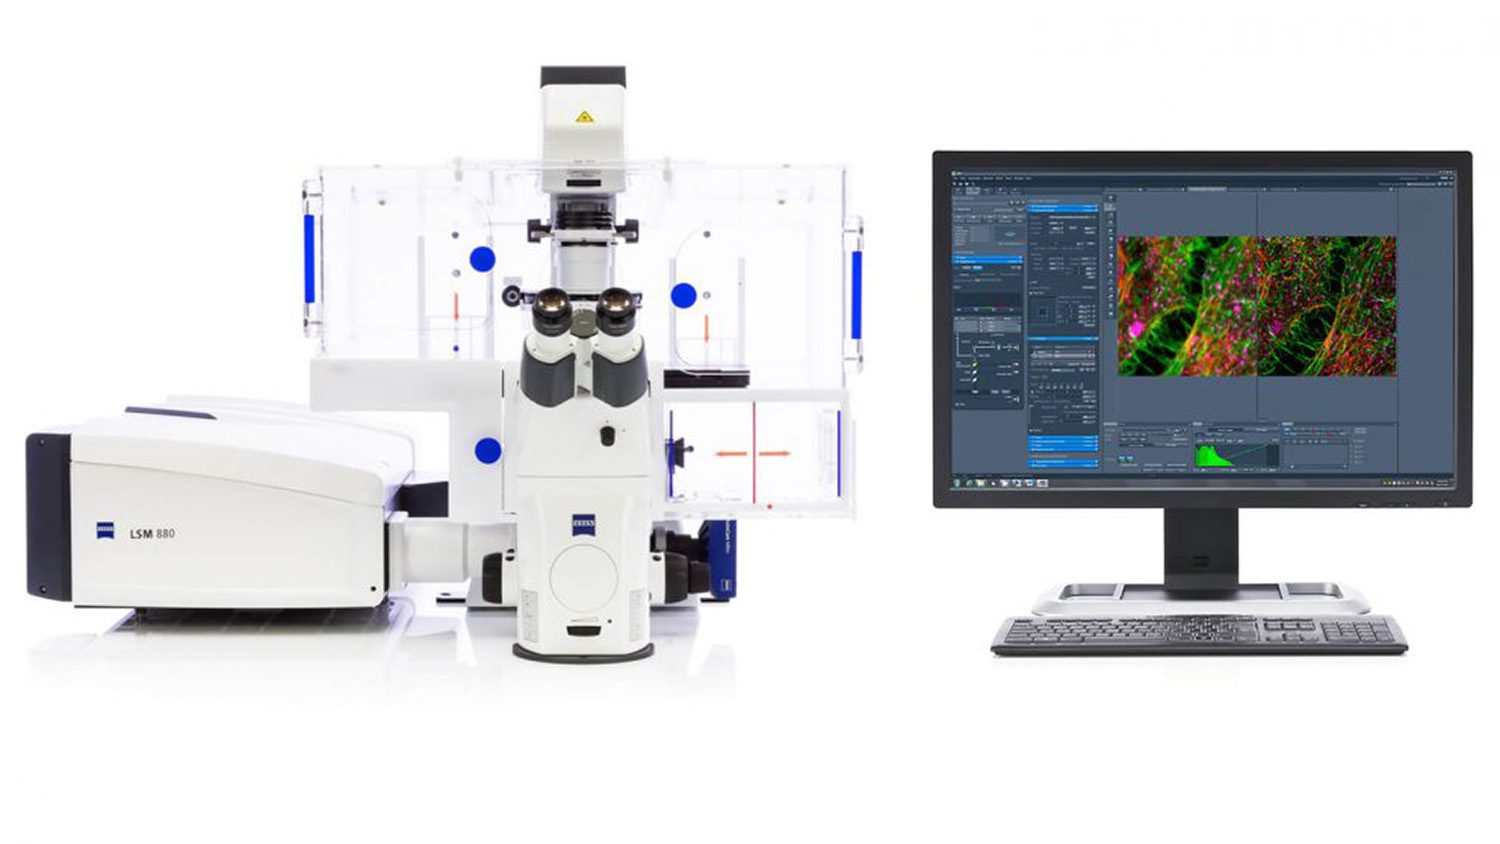 Zeiss microscope and monitor